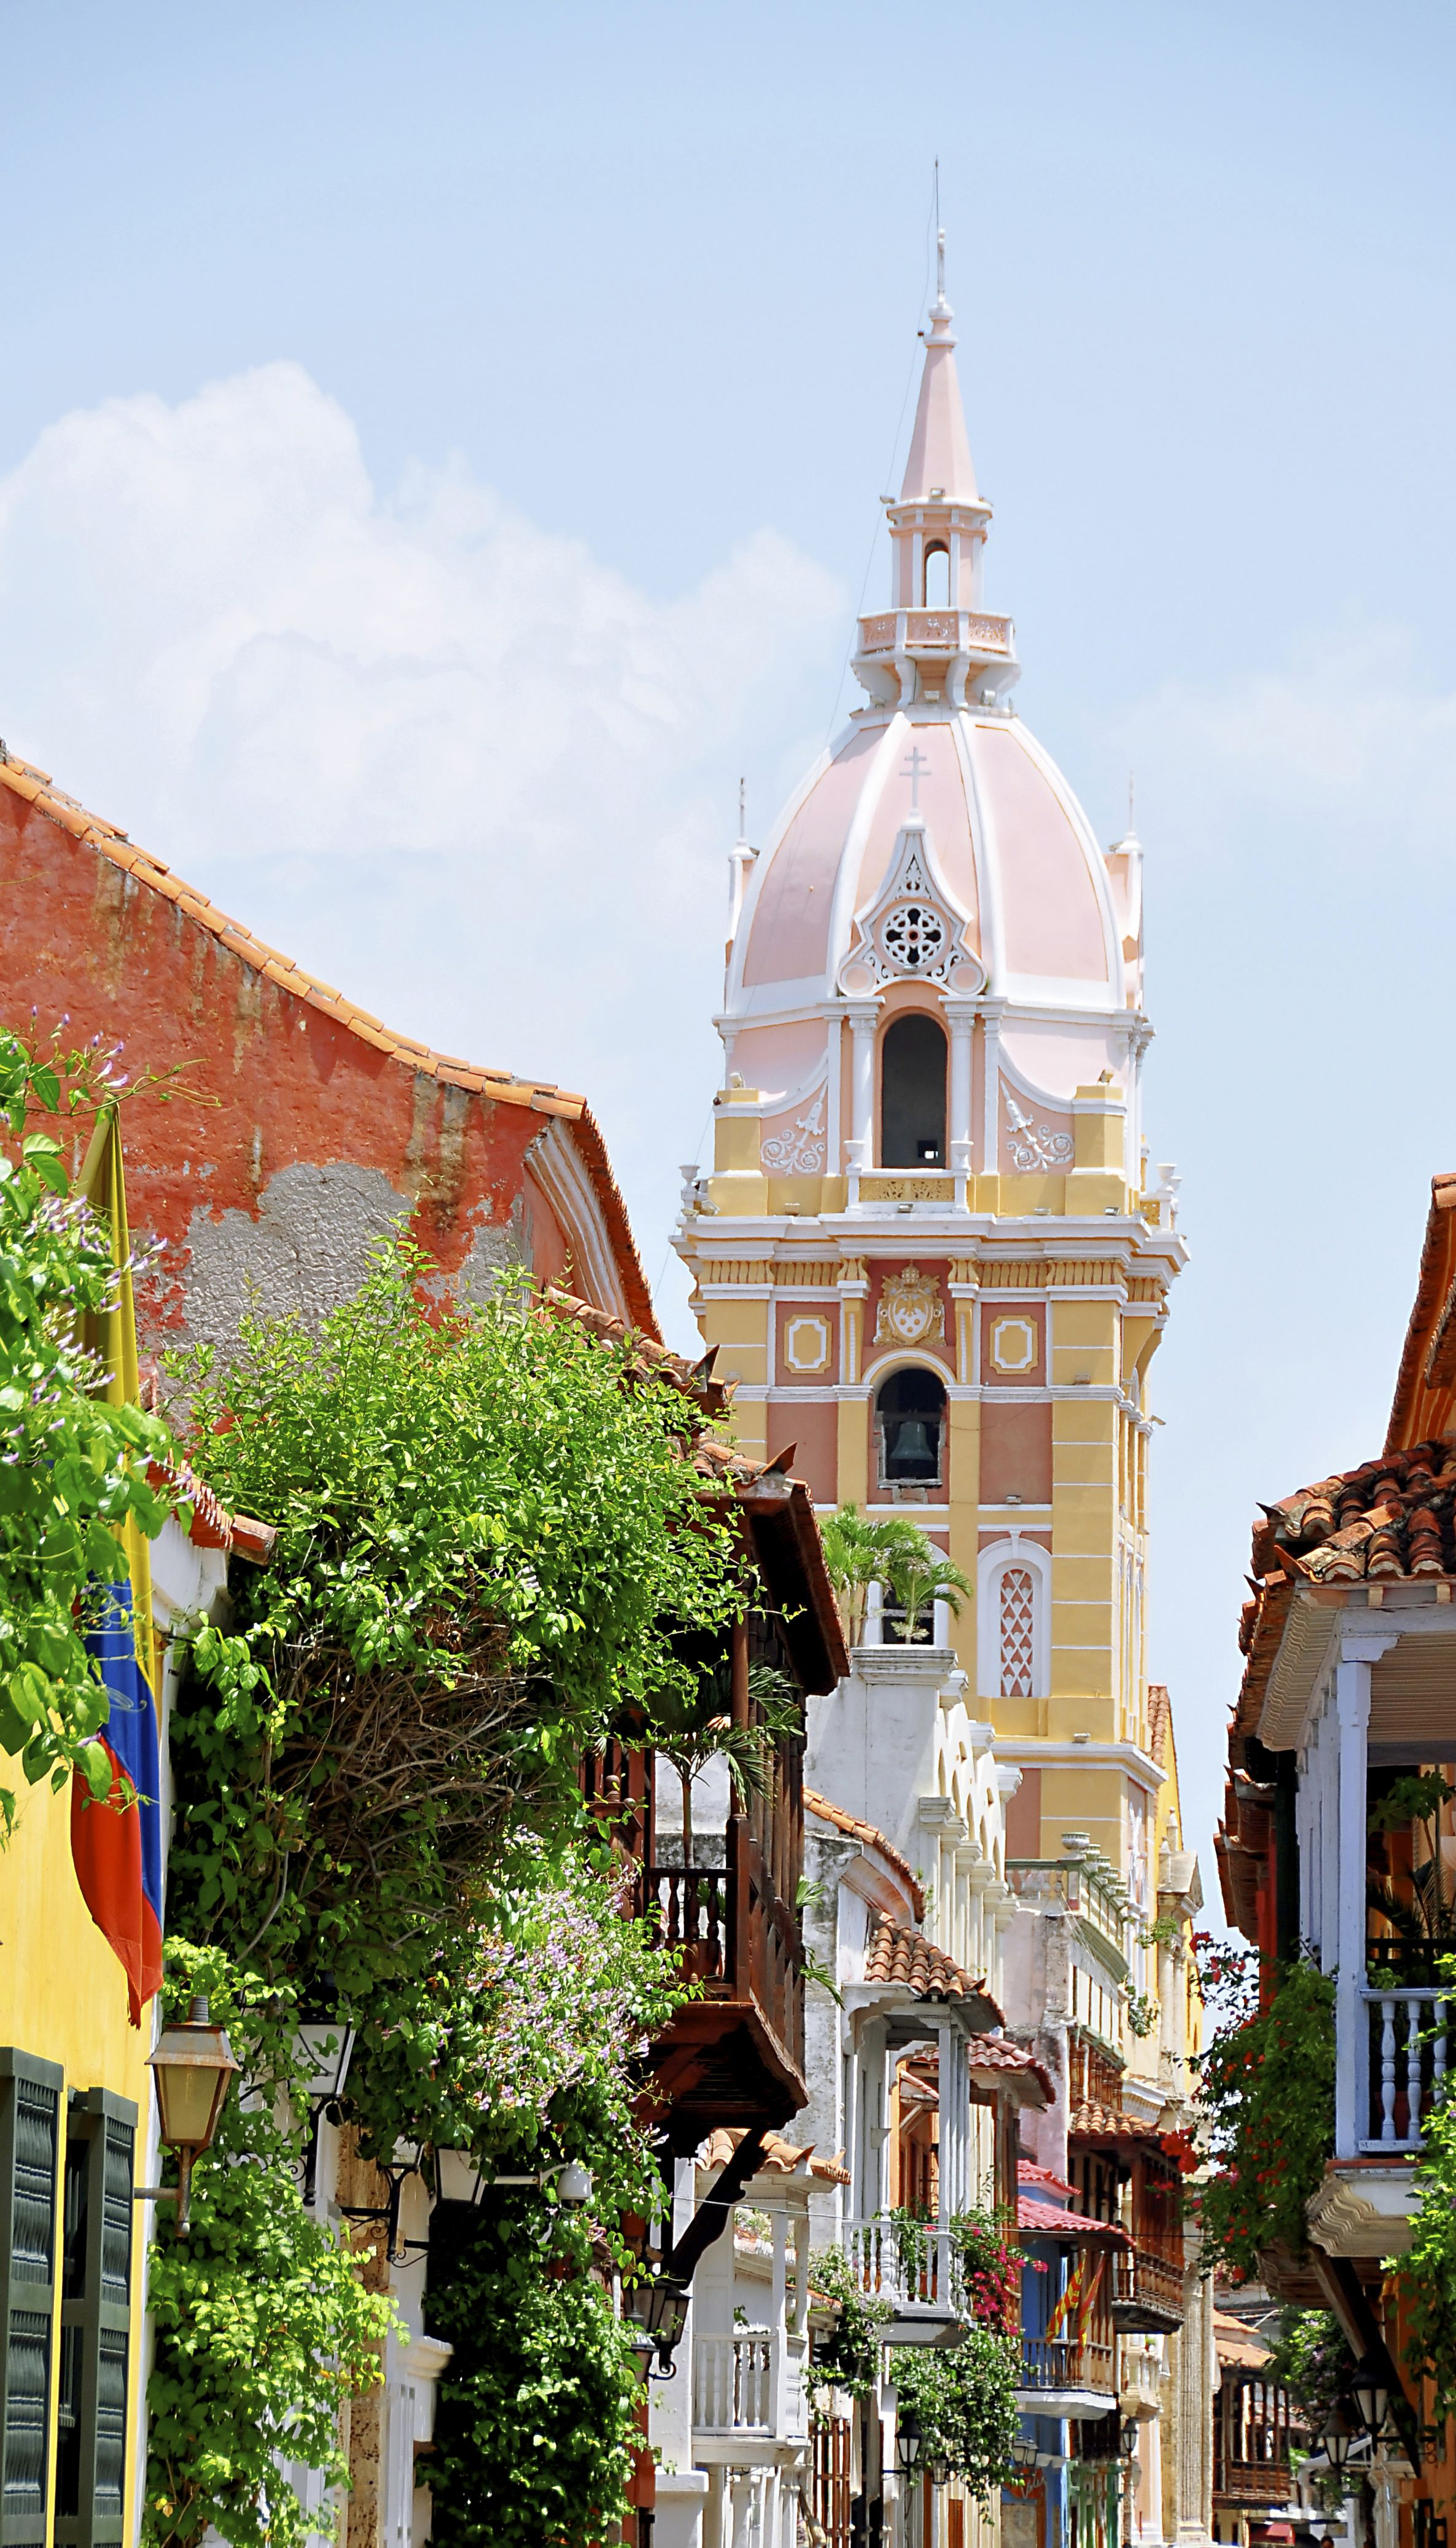 This Is A Picture Of The Old Cathedral Tower In Colombia The Architecture In Colombia Is Historic Tourists Can Take T Wonderful Places Travel Intrepid Travel